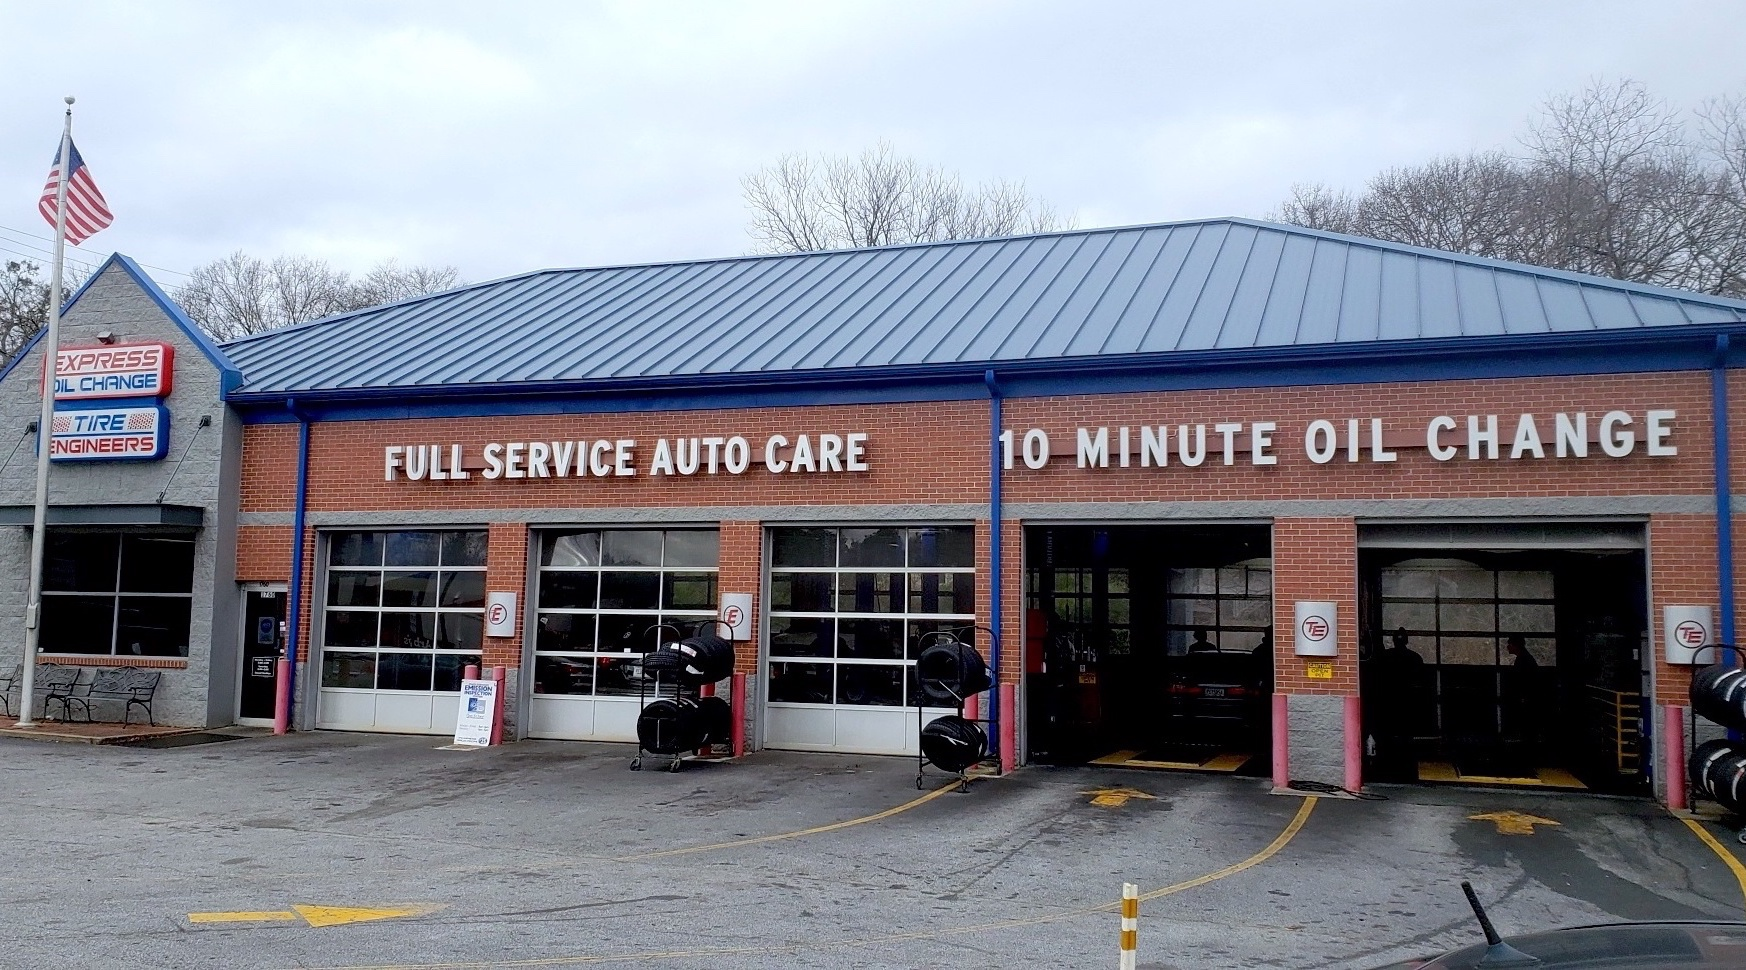 Express Oil Change & Tire Engineers at Atlanta, GA - Howell Mill Road store